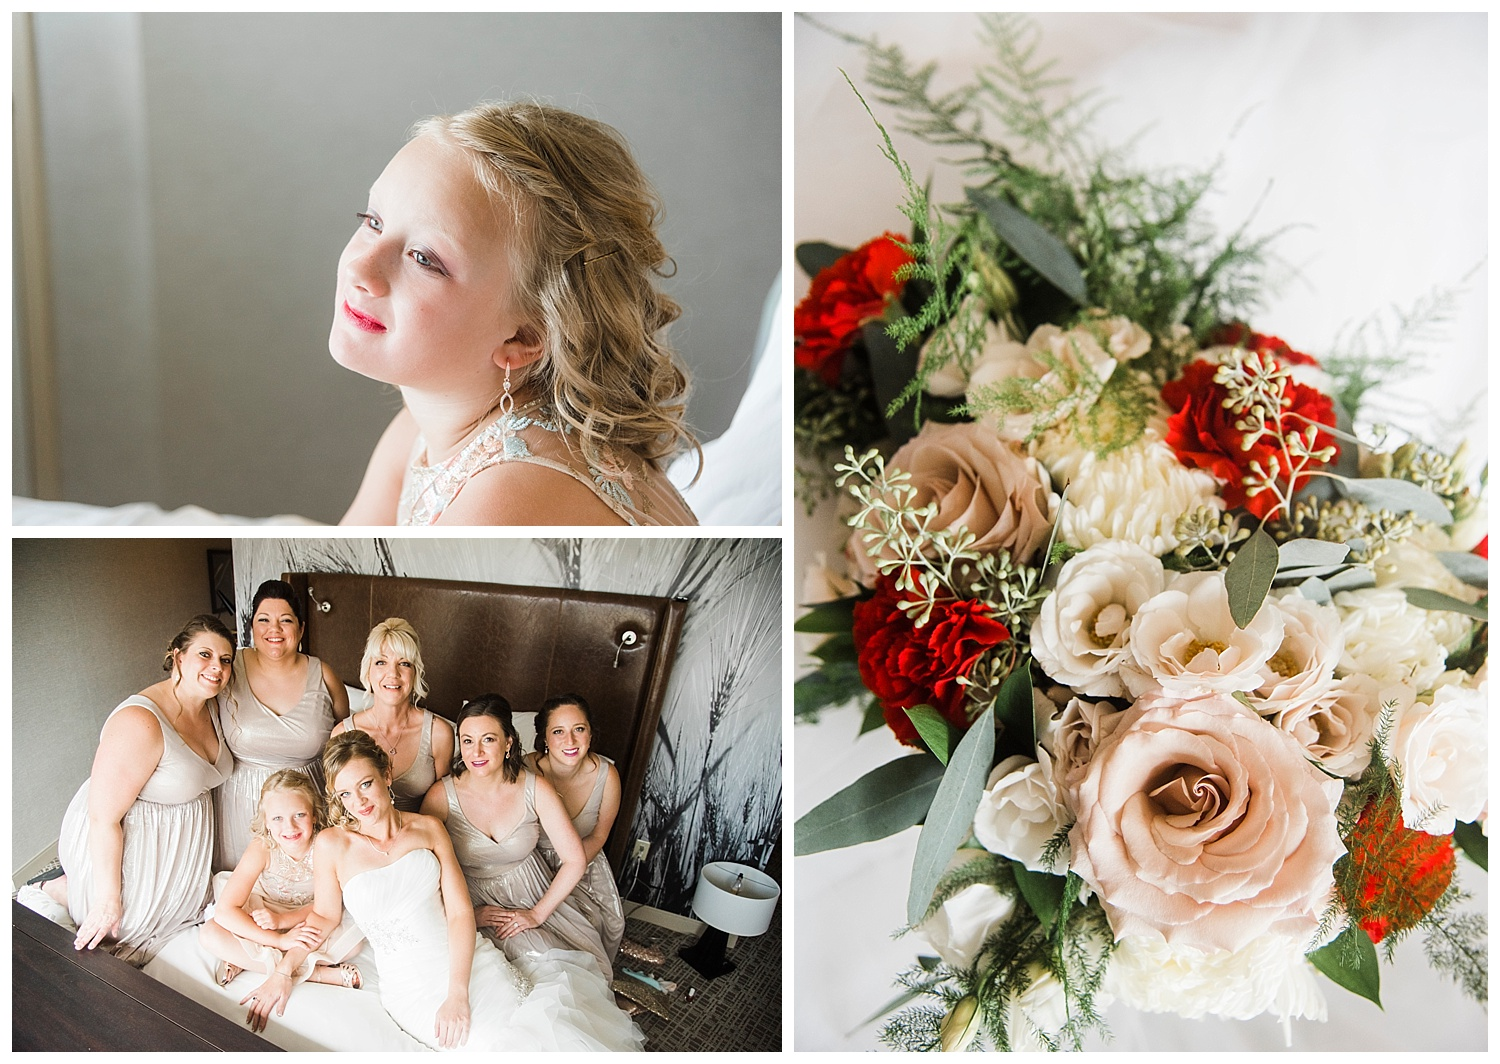 Wedgewood_Boulder_Creek_Wedding_Venue_Colorado_Photographer_Apollo_Fields_001.jpg